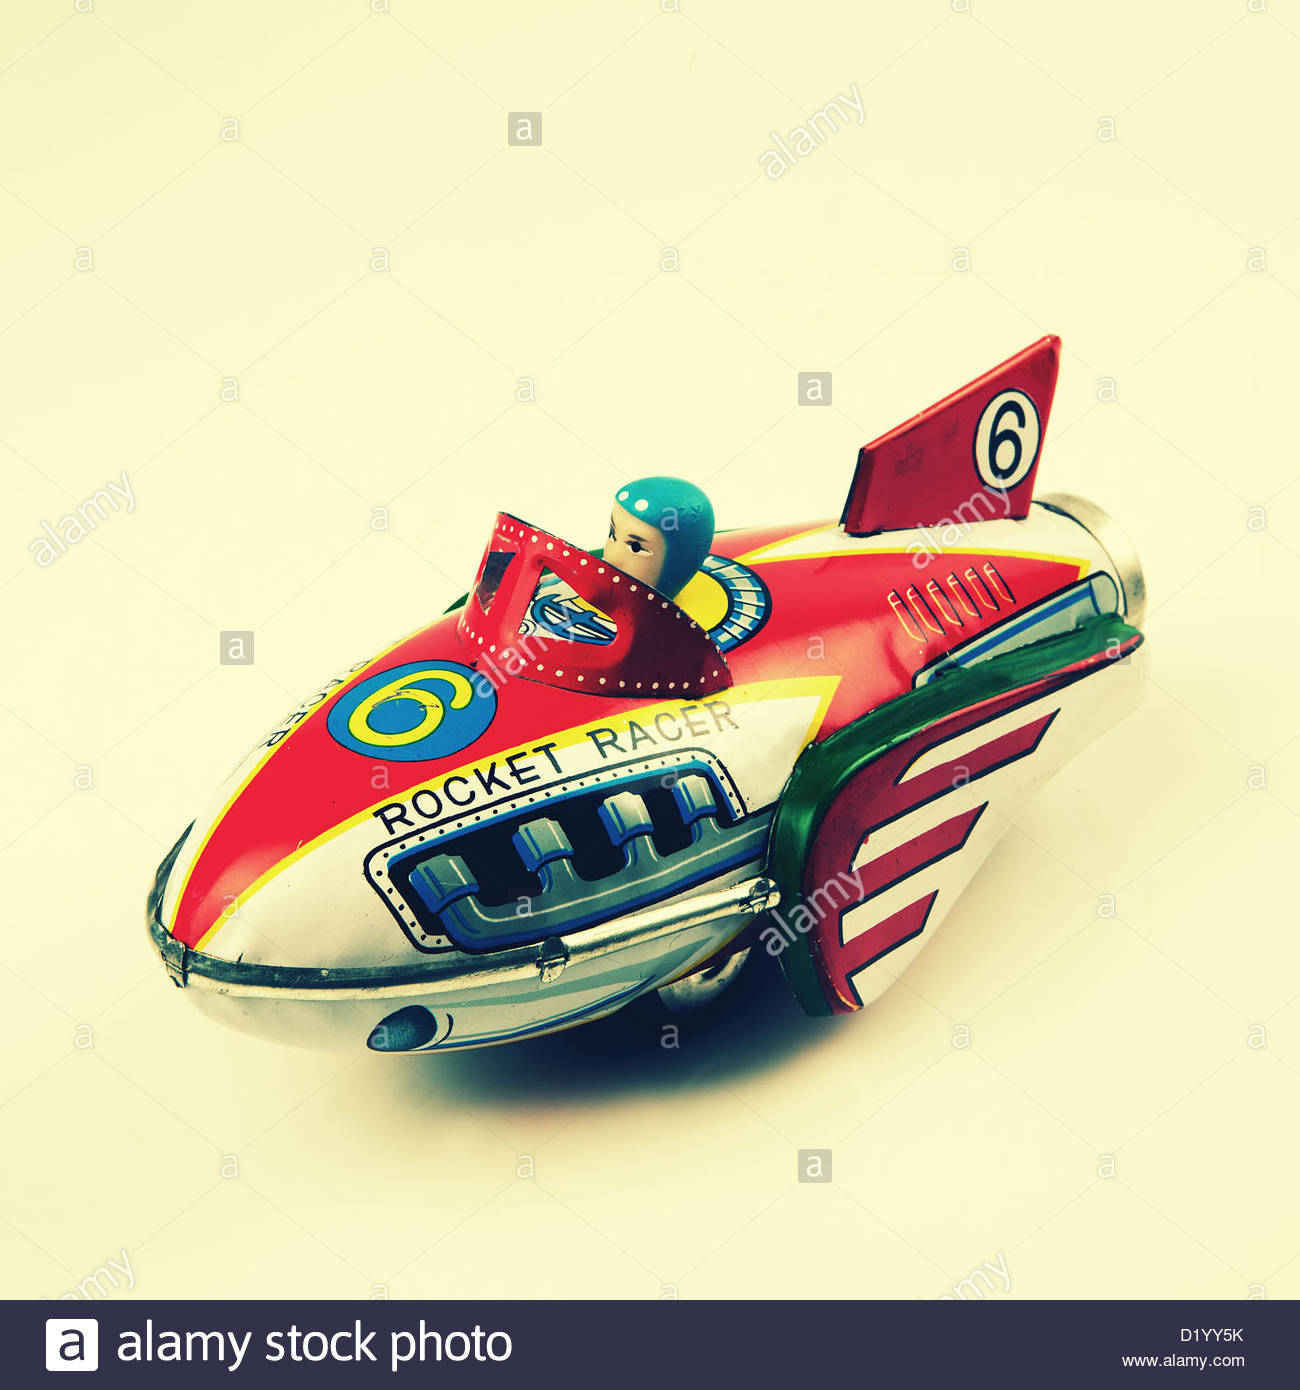 rocket racer tin plate toy - Stock Image